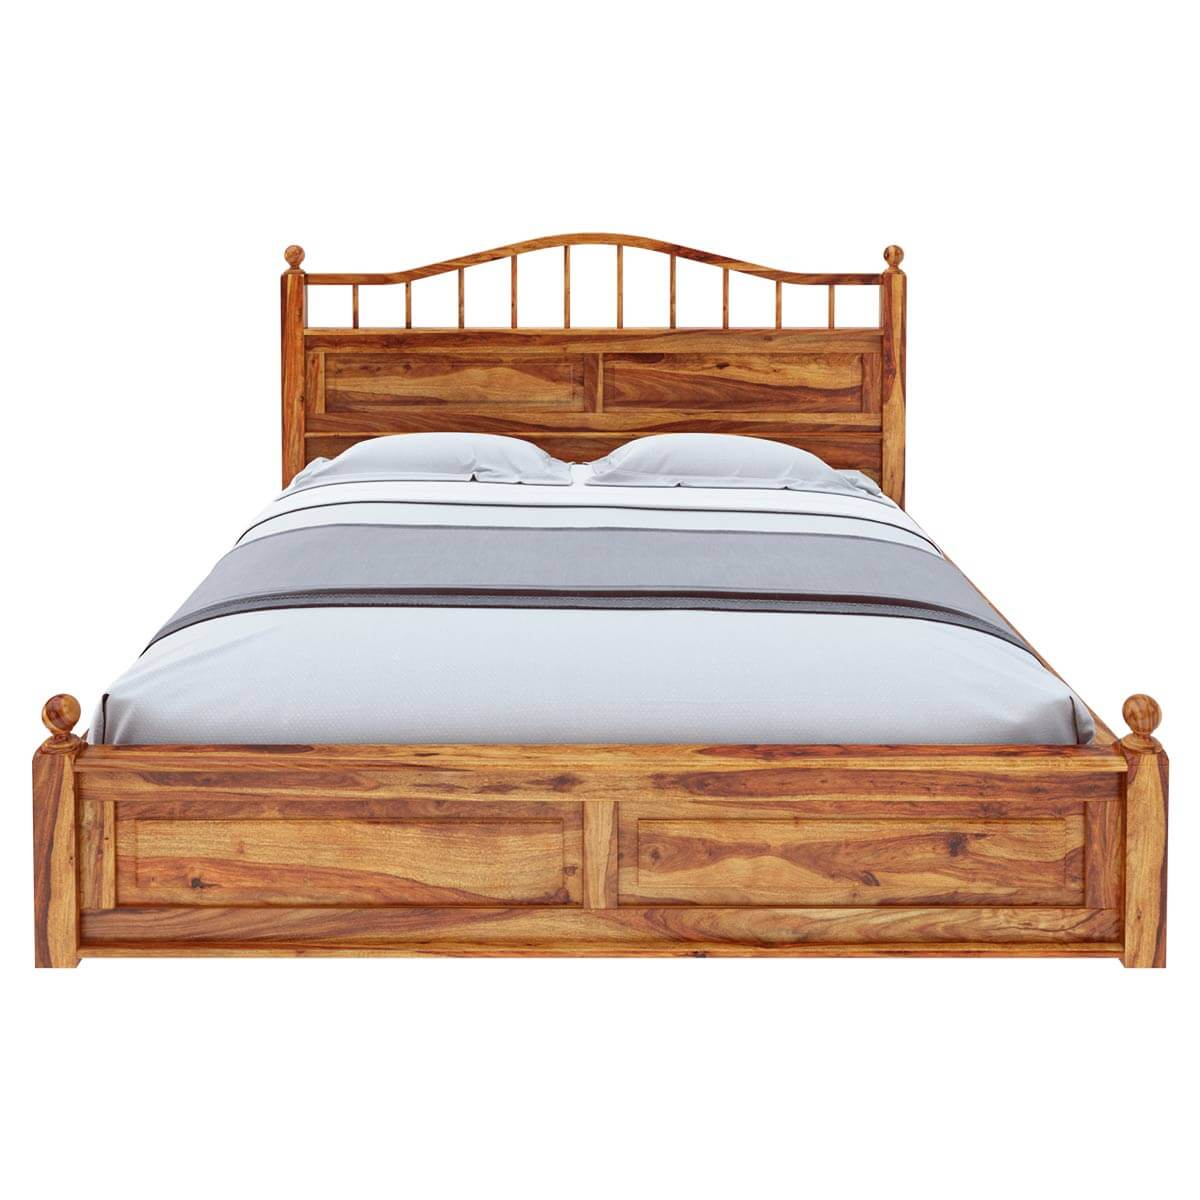 colonial rail top solid wood platform bed frame. Black Bedroom Furniture Sets. Home Design Ideas